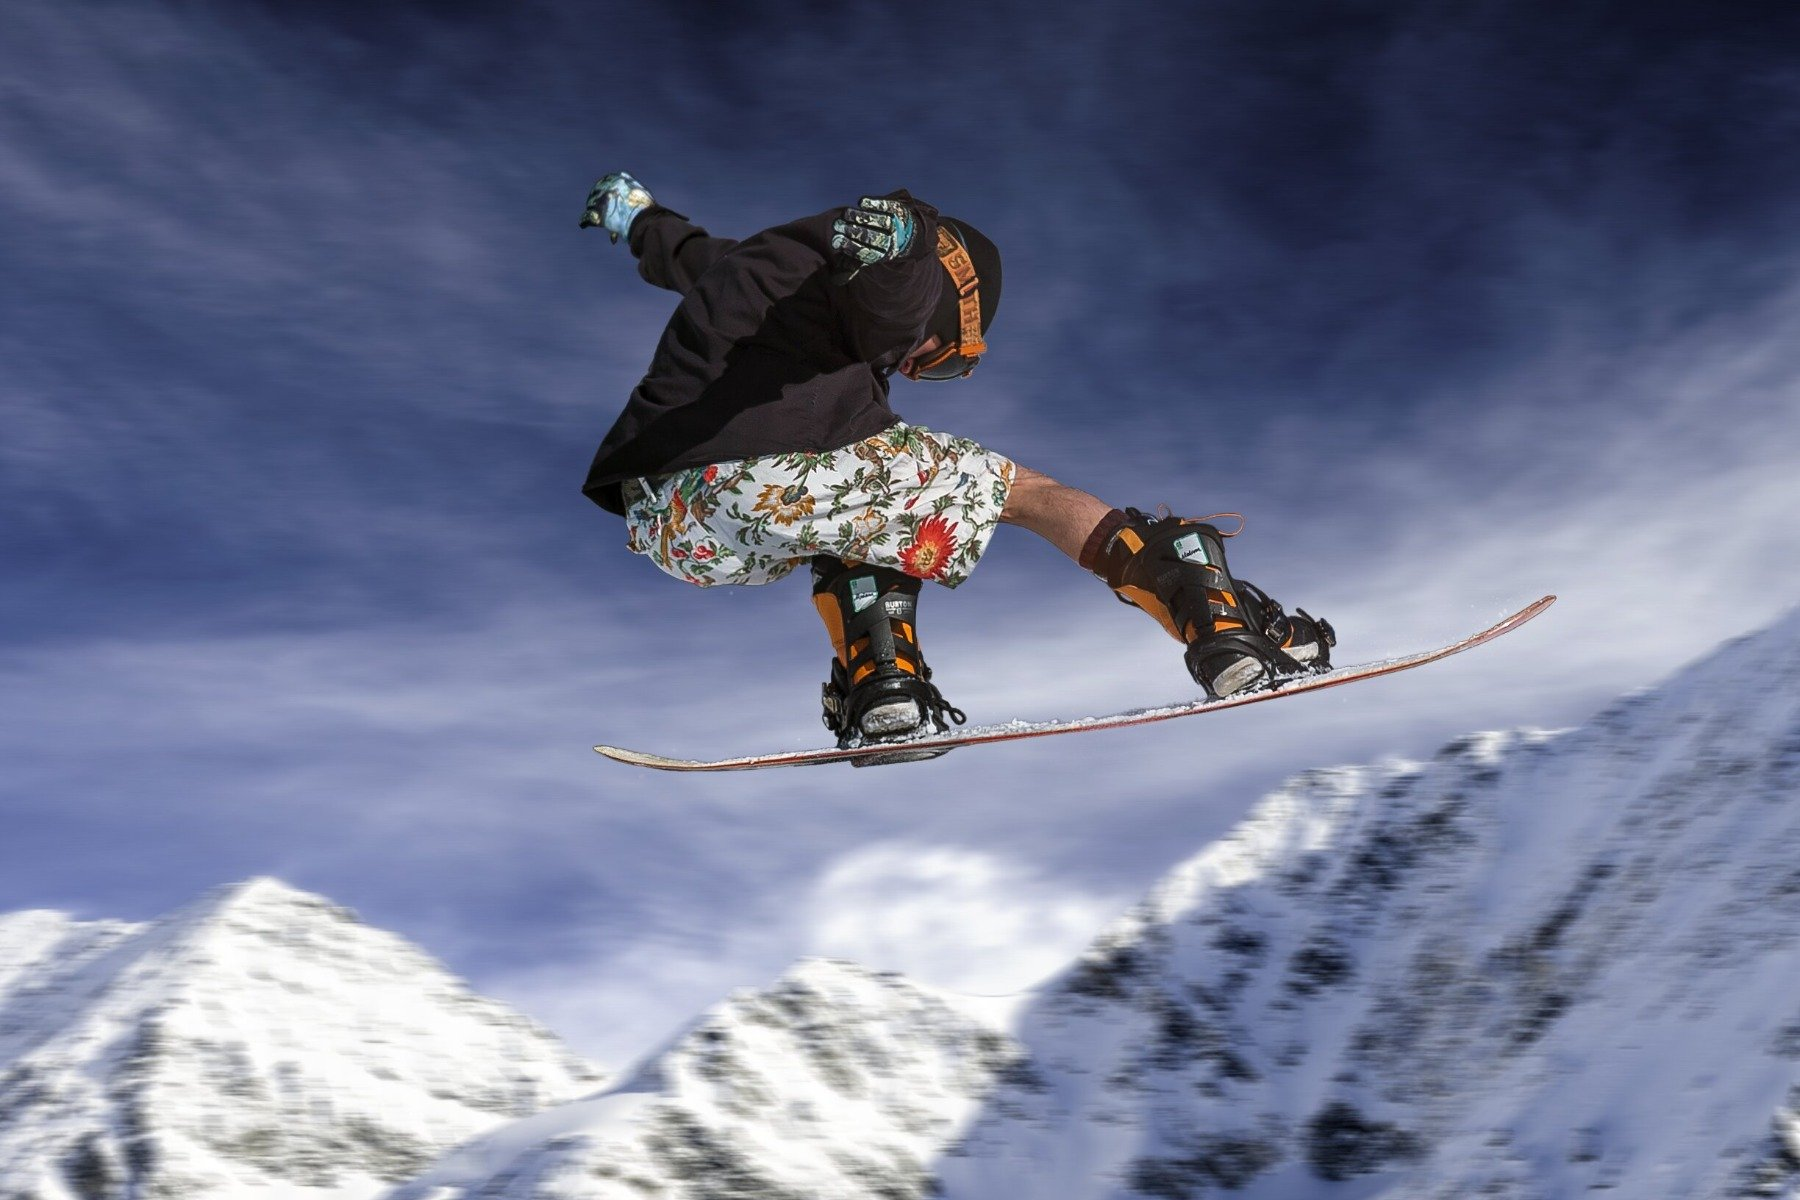 Man wearing floral shorts flying through air on snowboard